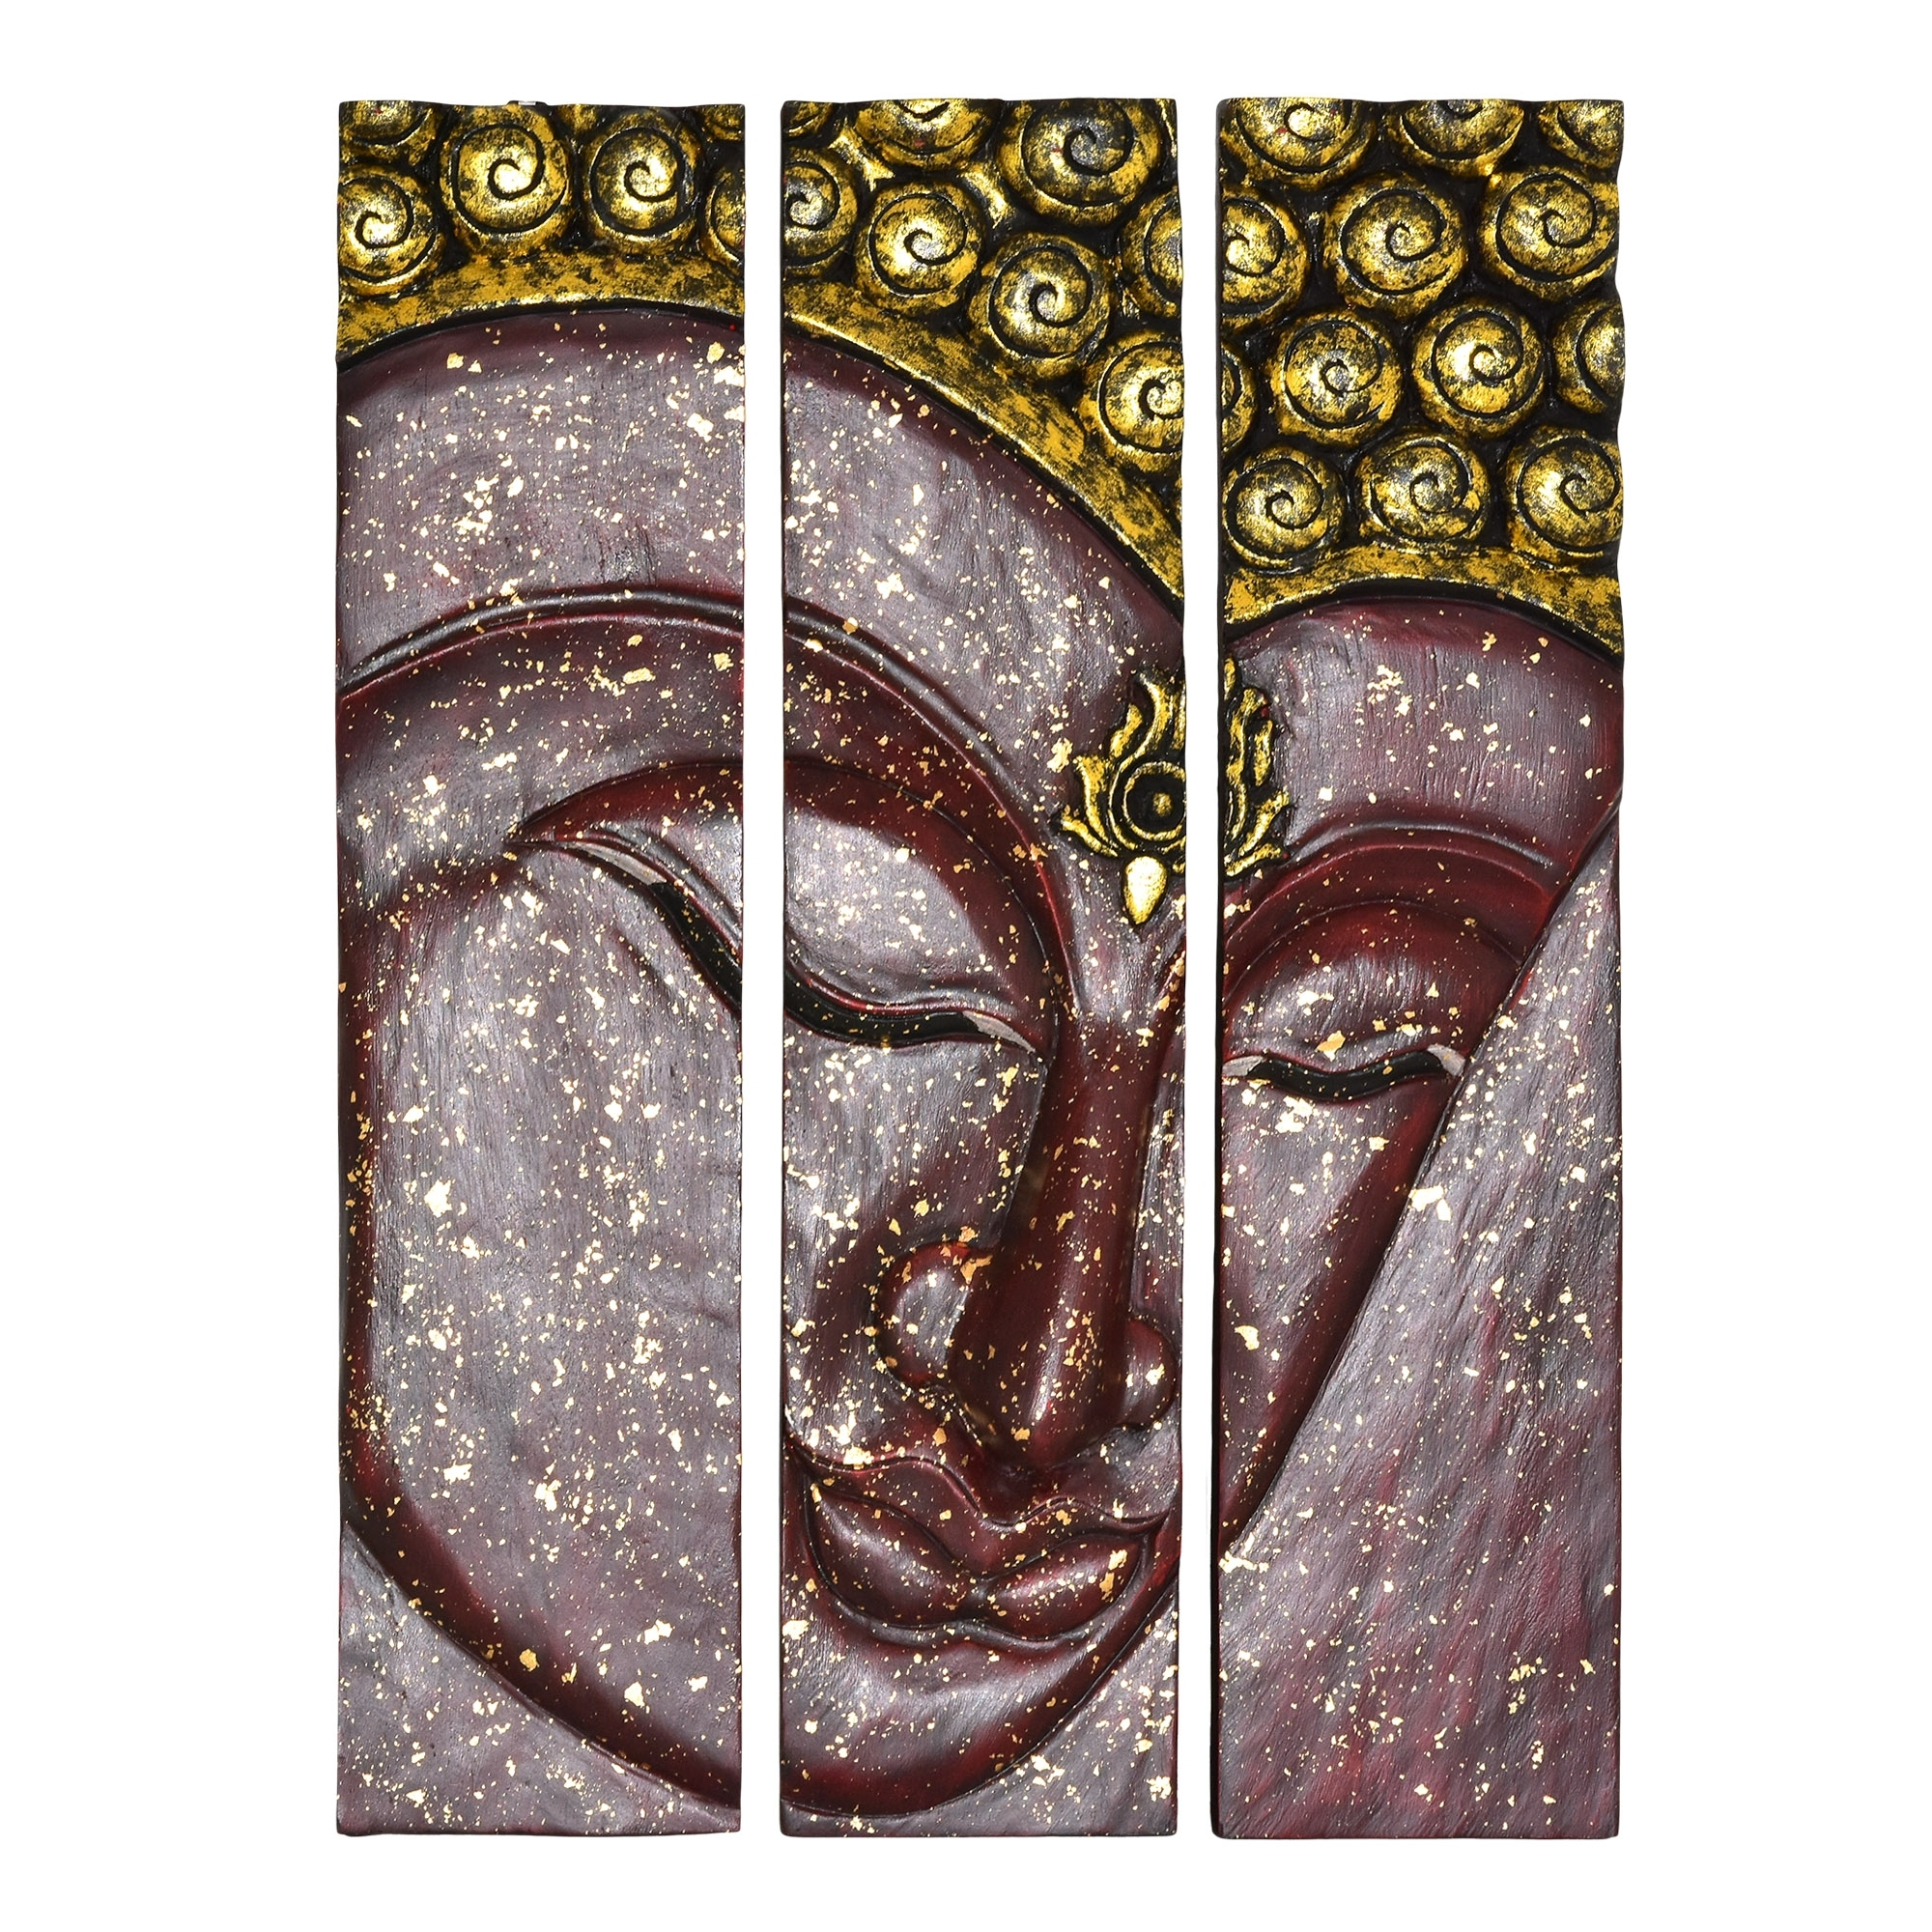 Golden Red Buddha Face Three Panel Hand Carved Wood Wall Art 20X30 Intended For Most Recent Carved Wood Wall Art (View 9 of 15)